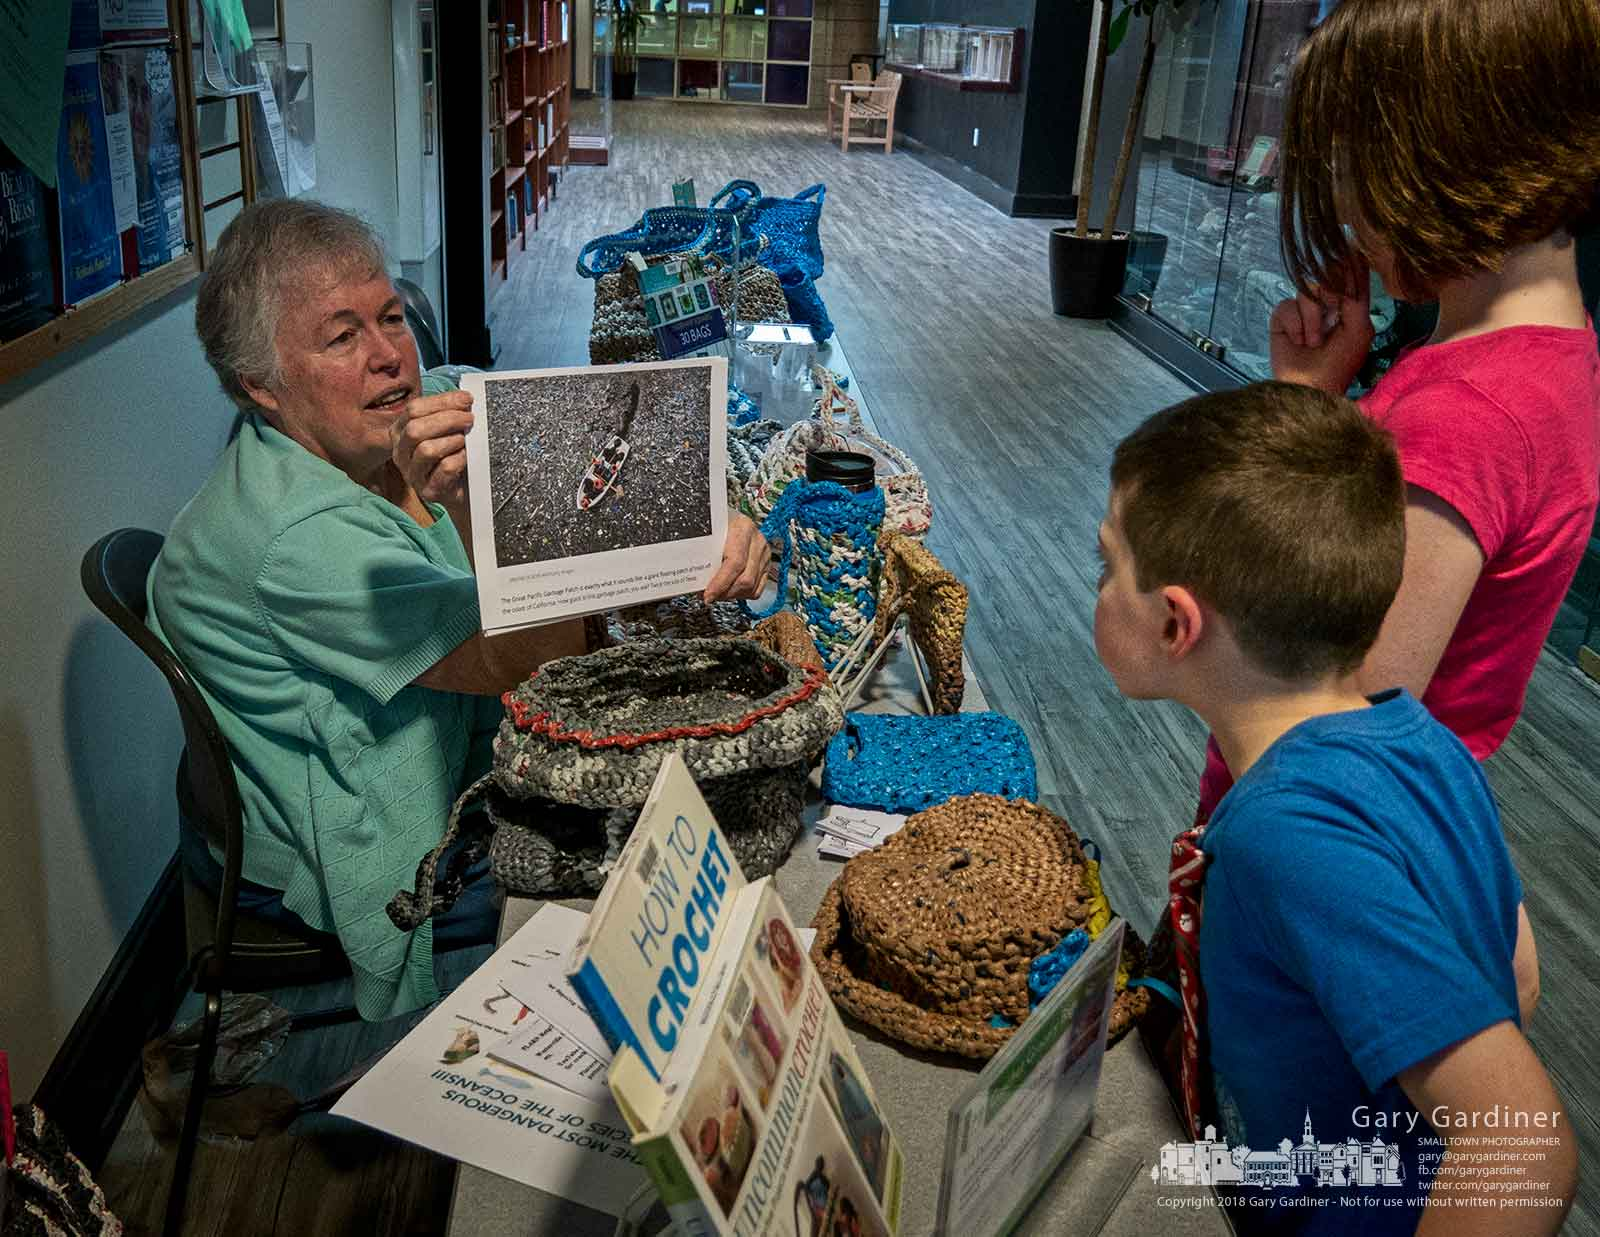 Rose Blanchard shows a photo of a boat traveling through a floating island of plastic as she explains her crocheting process that turns discarded plastic bags into shopping bags to a family at the Westerville Public Library on Earth Day. My Final Photo for April 22, 2018.